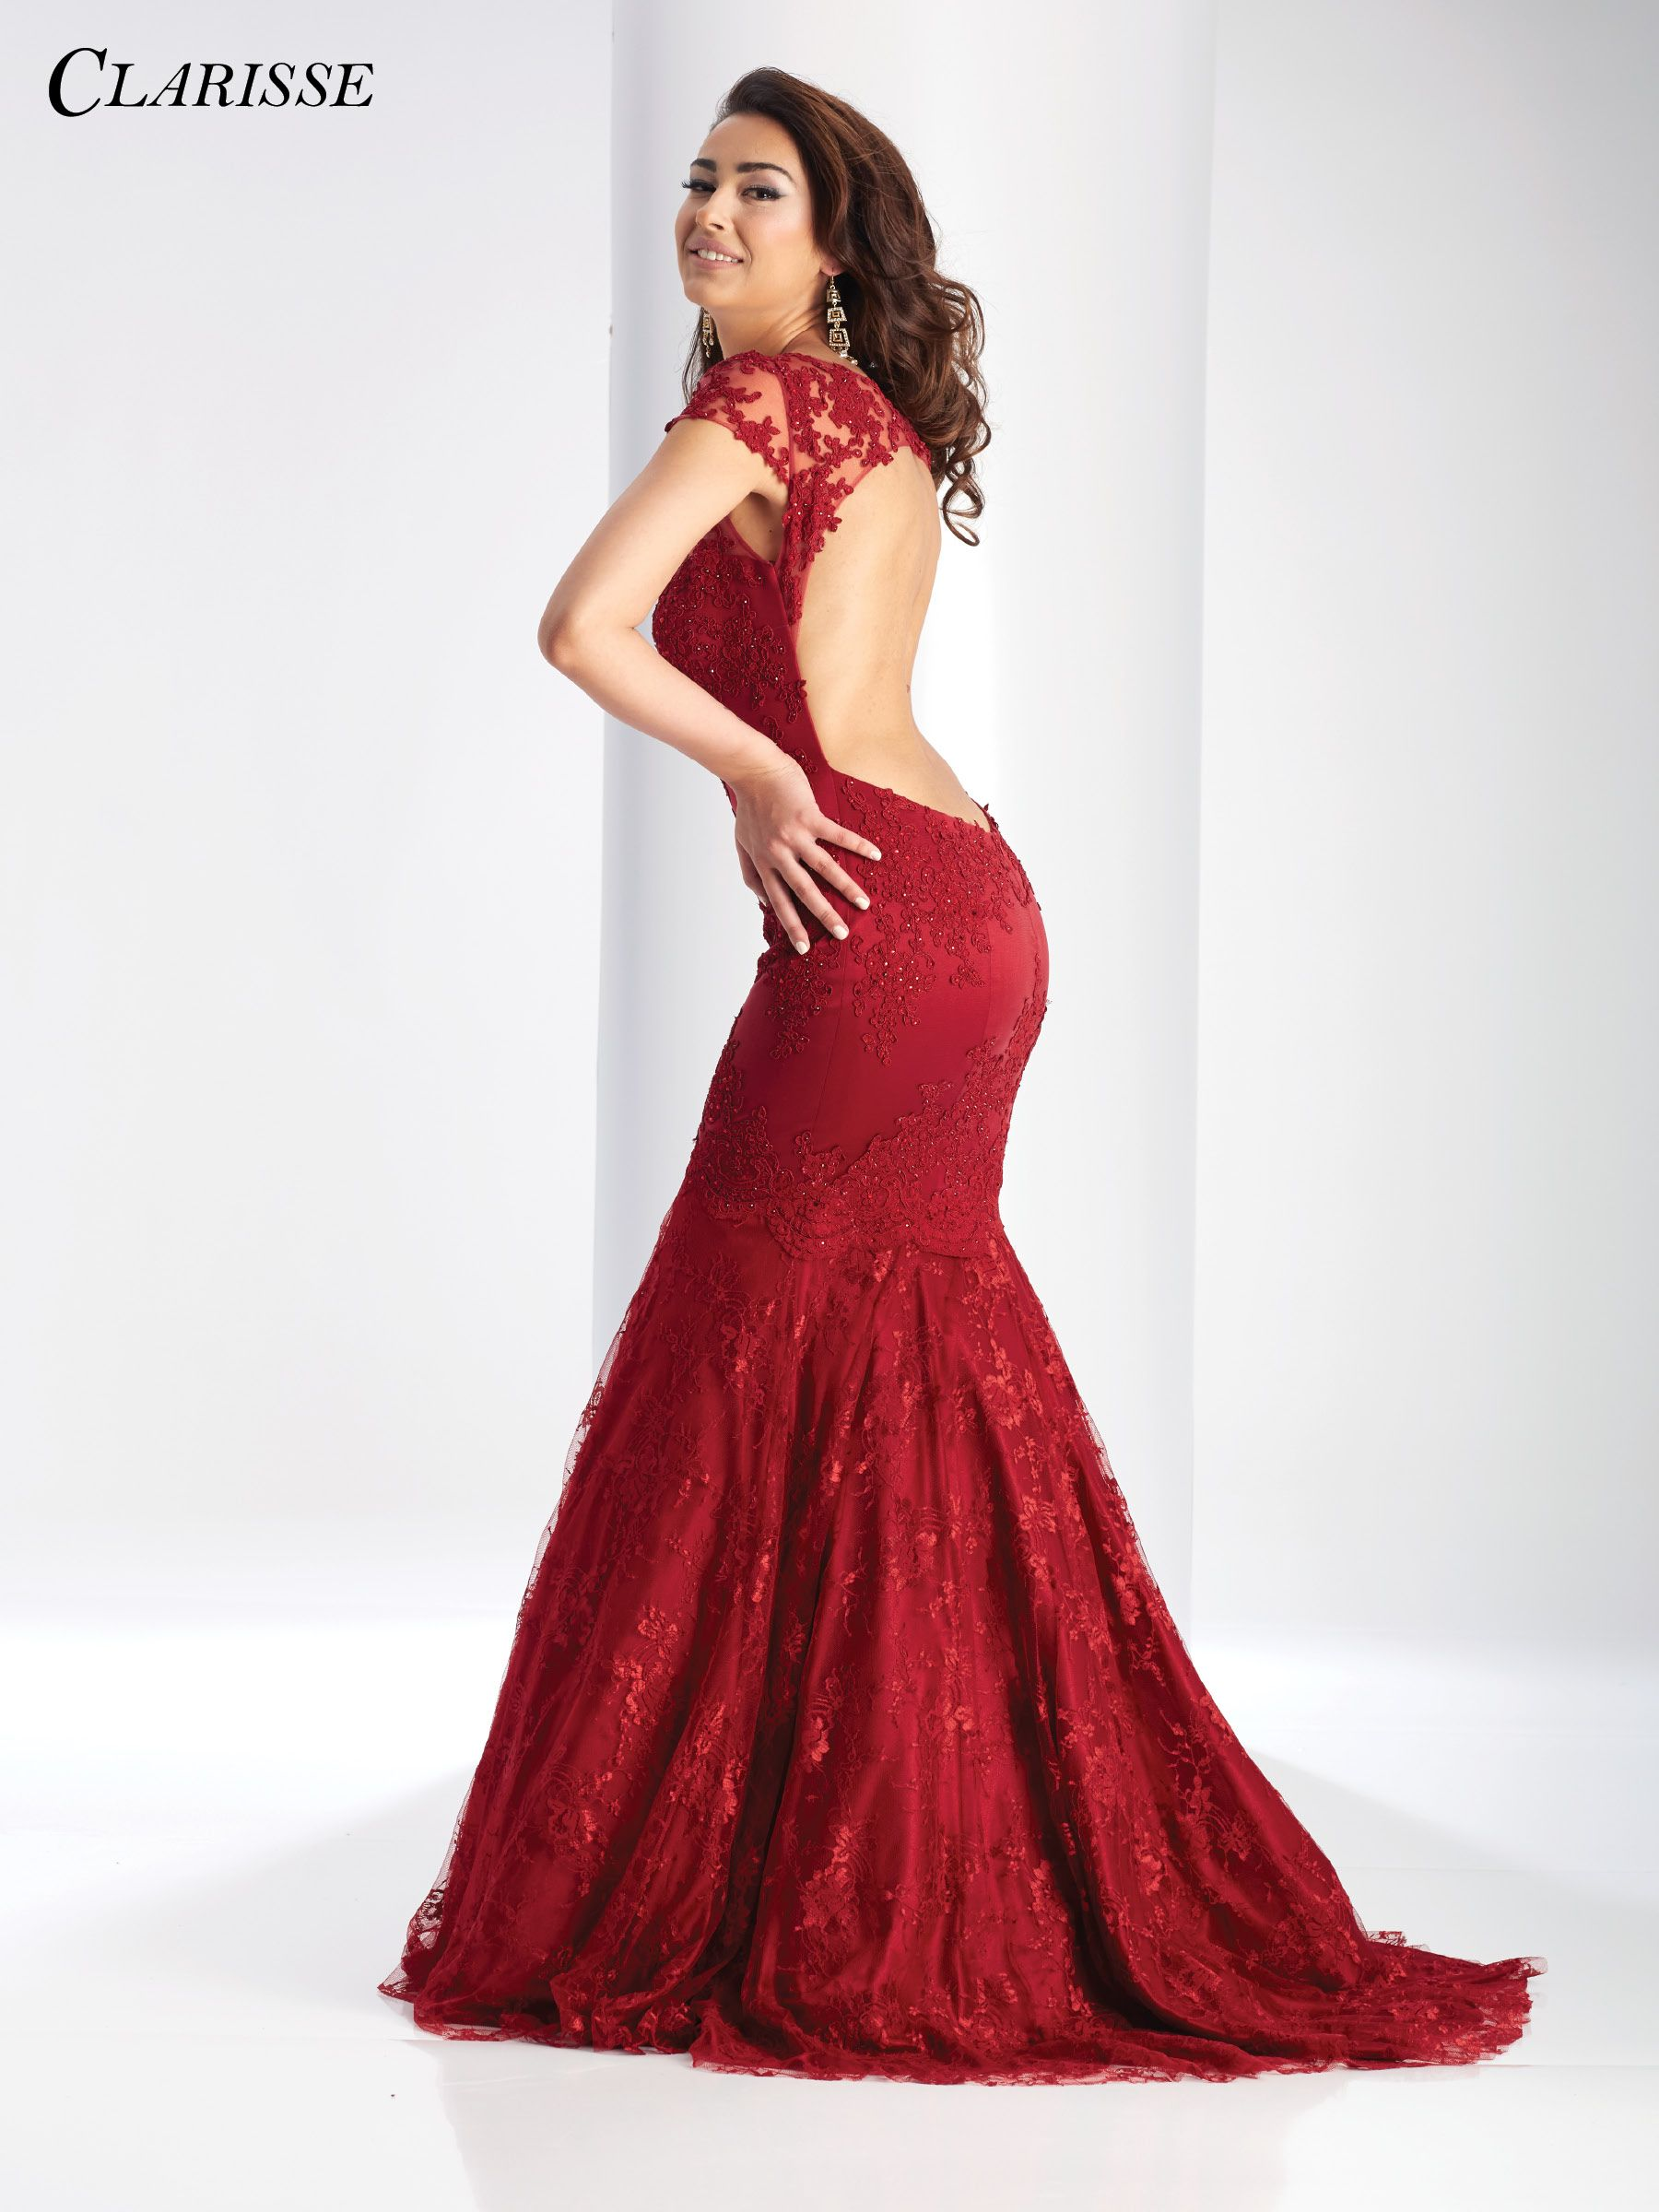 Clarisse prom dress this elegant lace mermaid dress with